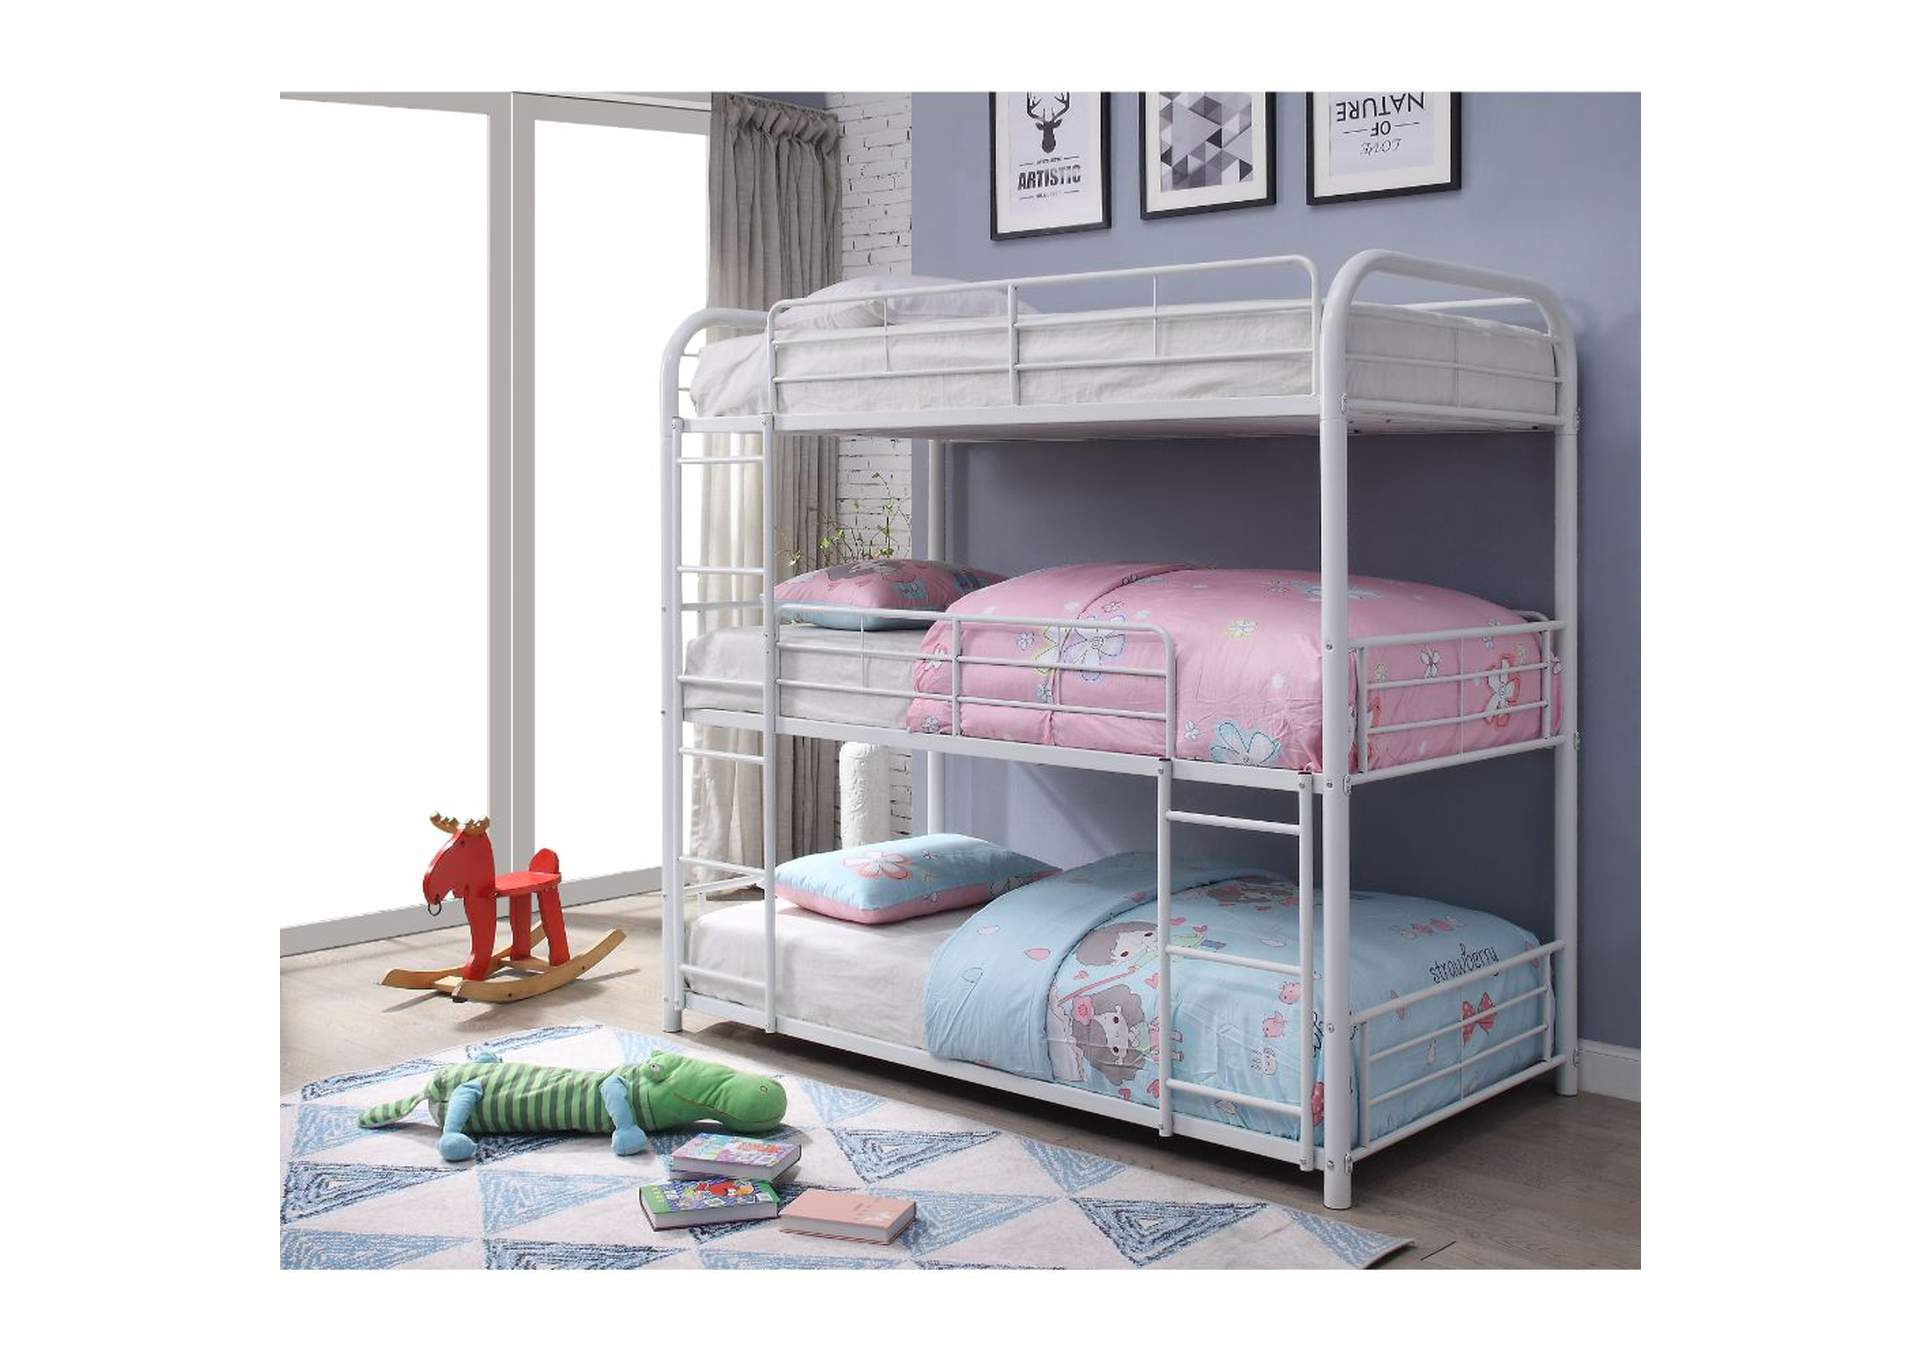 Cairo White Triple Bunk Bed - Twin,Acme